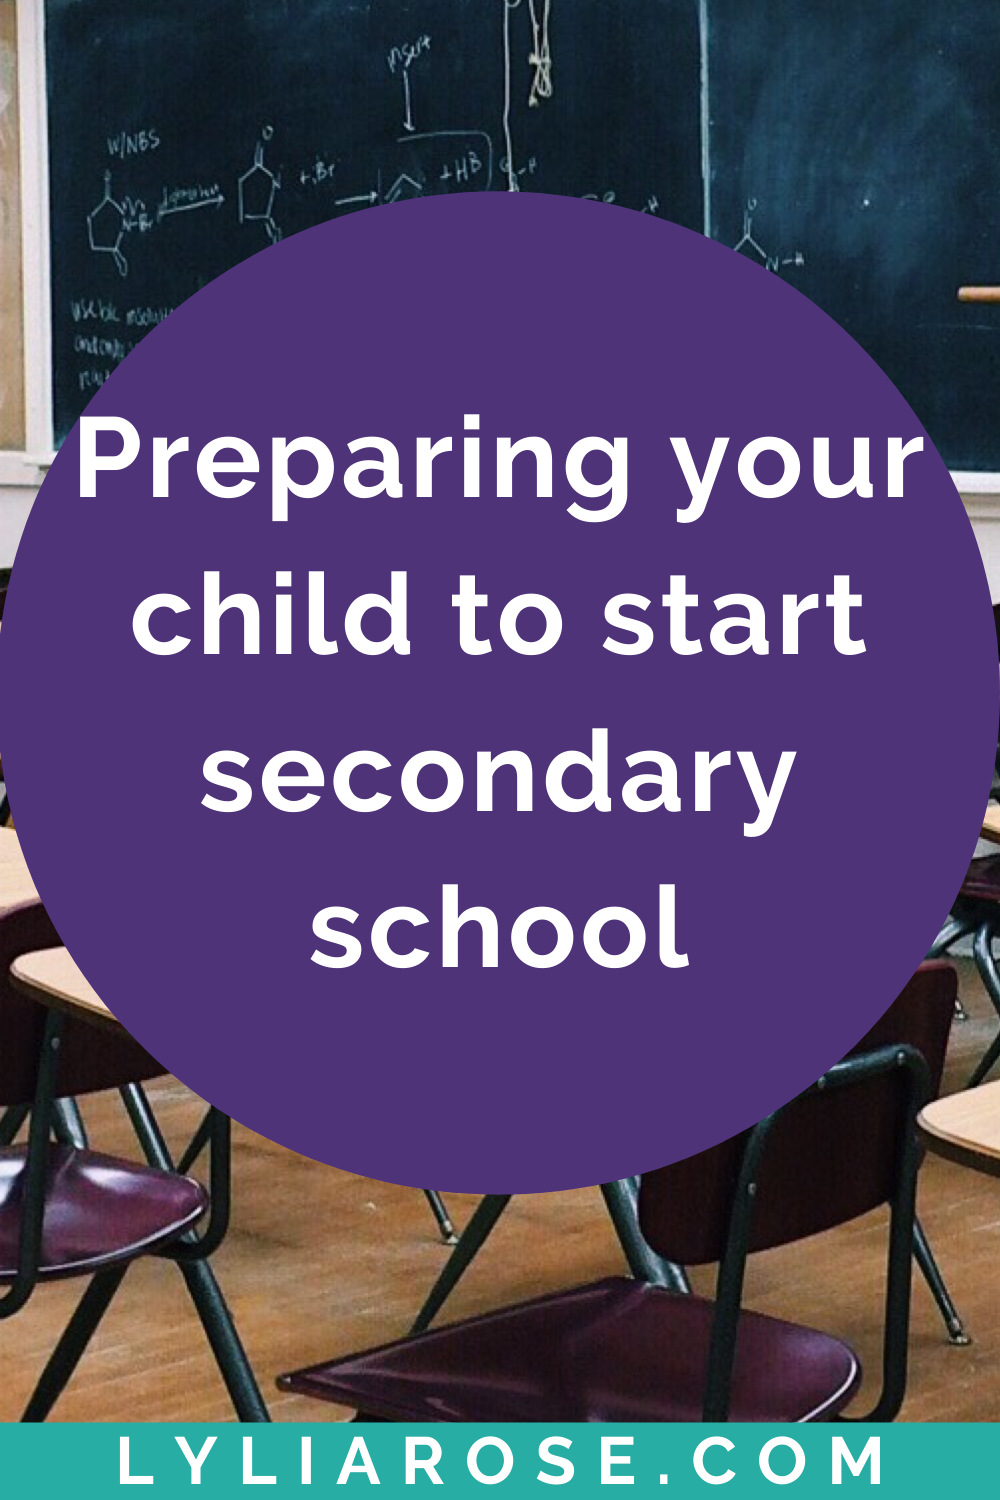 Preparing your child to start secondary school in the summer holidays (1)